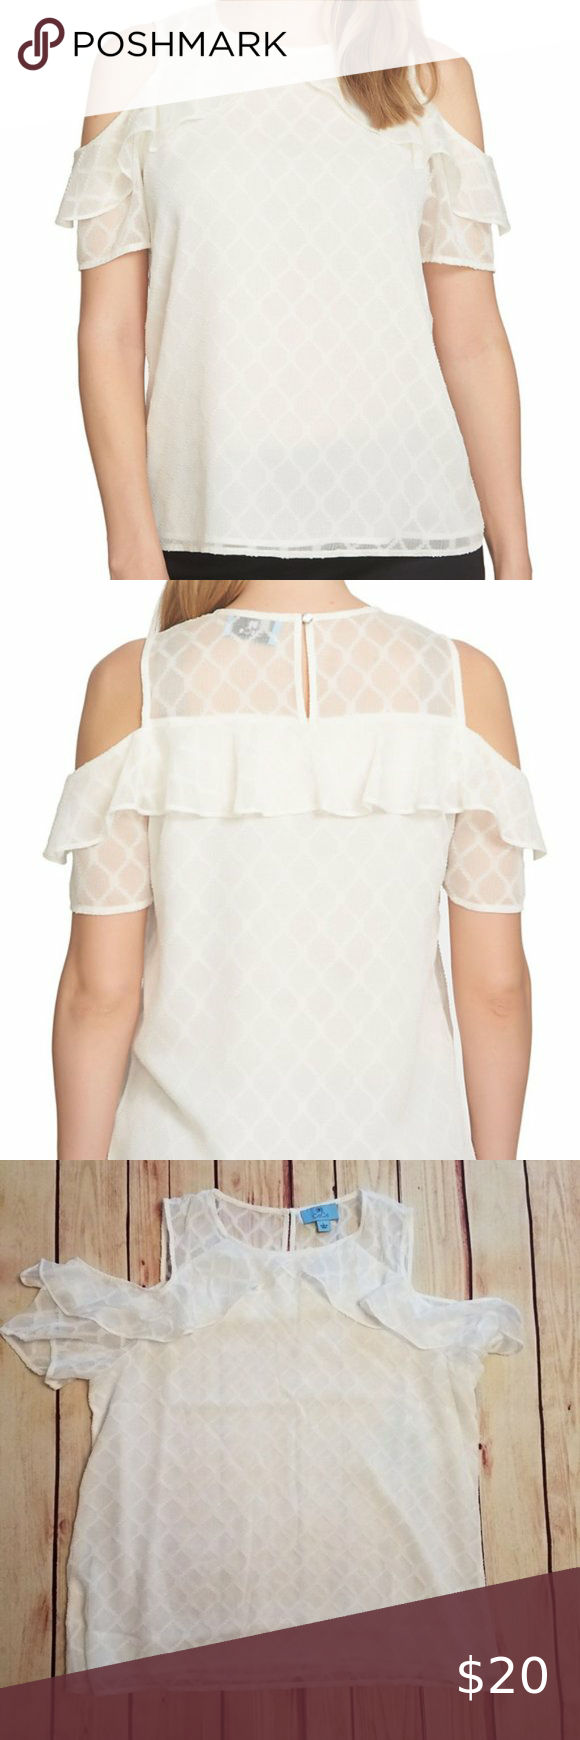 CeCe by Cynthia Steffe Cold Shoulder Diamond Top CeCe by Cynthia Steffe Cold Shoulder Diamond Top that is new with tags. It is a size large. Color is new ivory. Feminine frill is perfected in a cold-shoulder top cut from a sheer, floaty fabric with a textural diamond pattern and trimmed with a flouncy ruffle. Has a crew neck and back button and loop keyhold. Partially lined and 100% Polyester. Machine wash cold. Approximate measurements are: 21